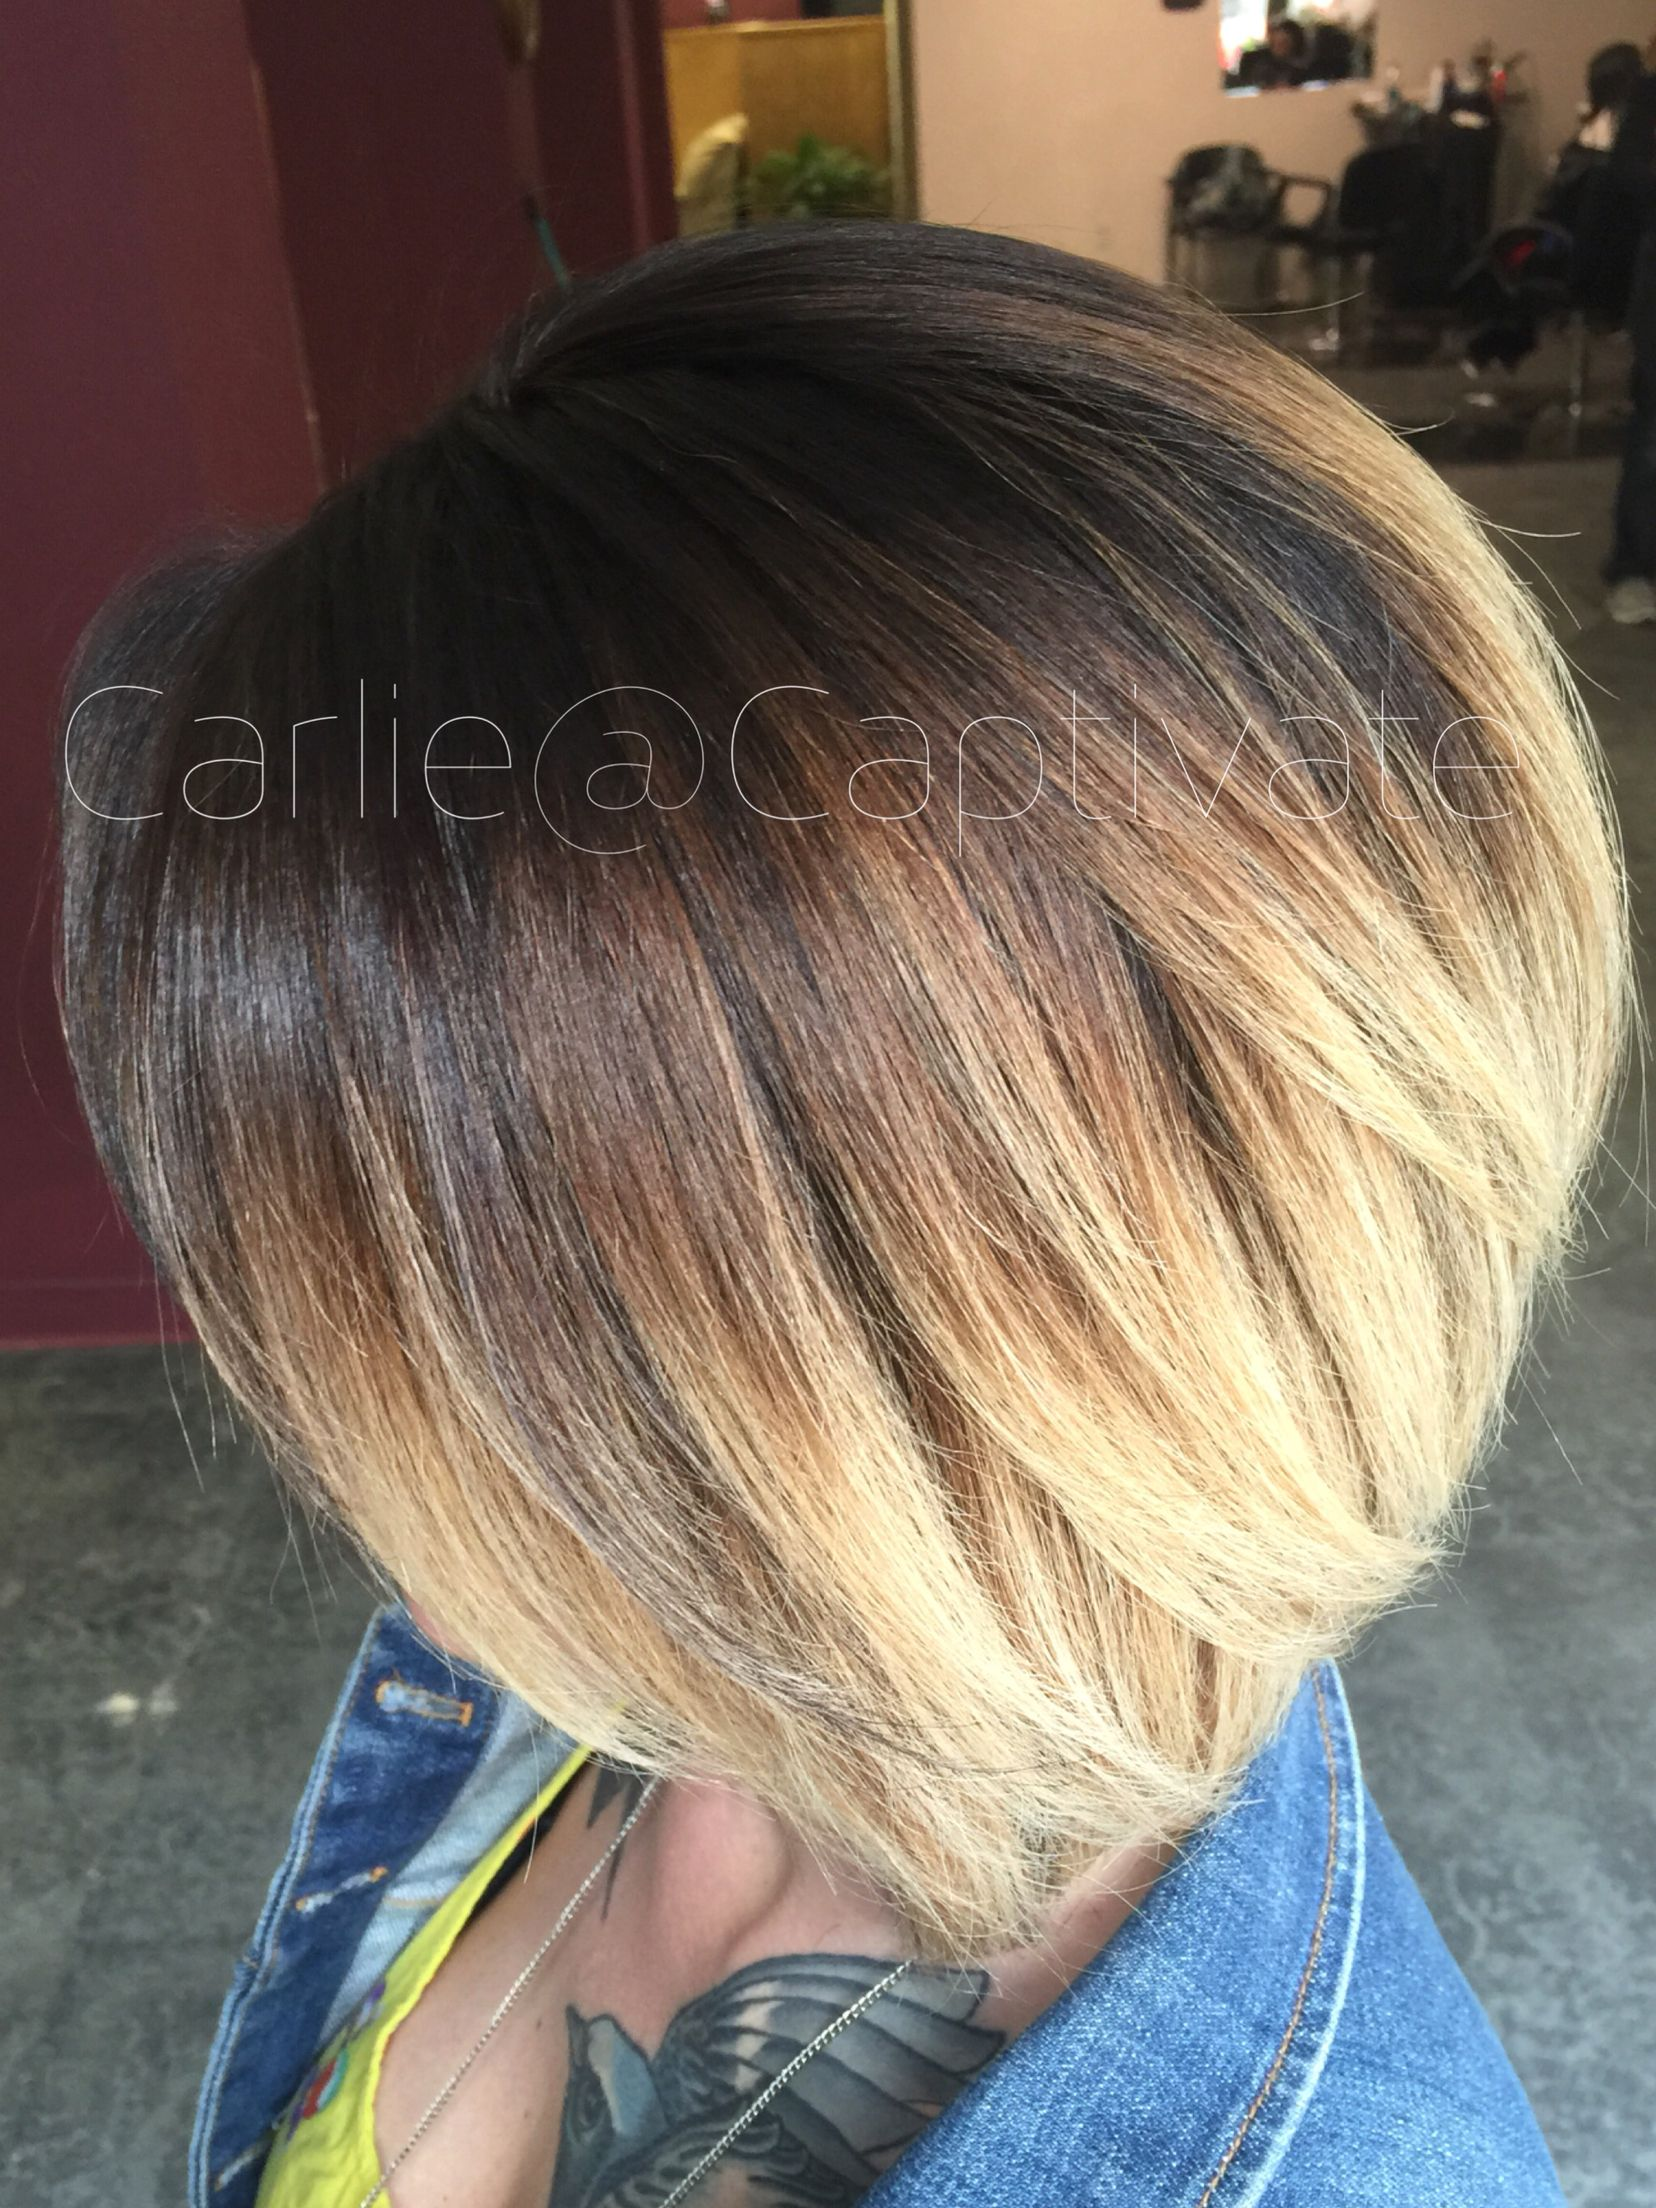 beautiful short hair balayage ombre. cut and color by carlie